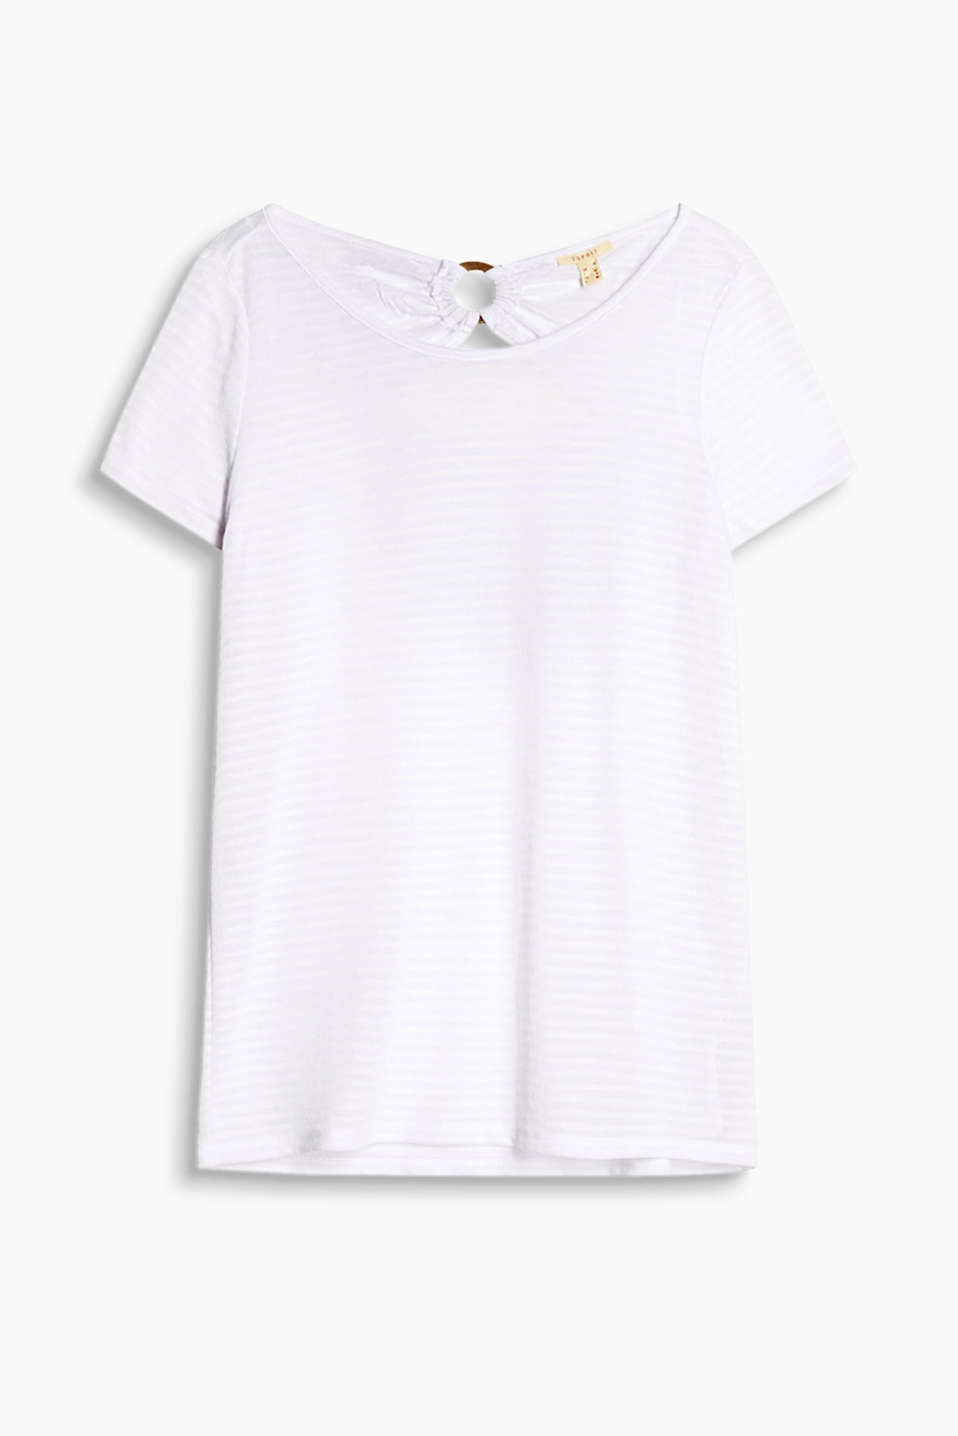 Soft, striped T-shirt with a decorative ring and cut-out at the back